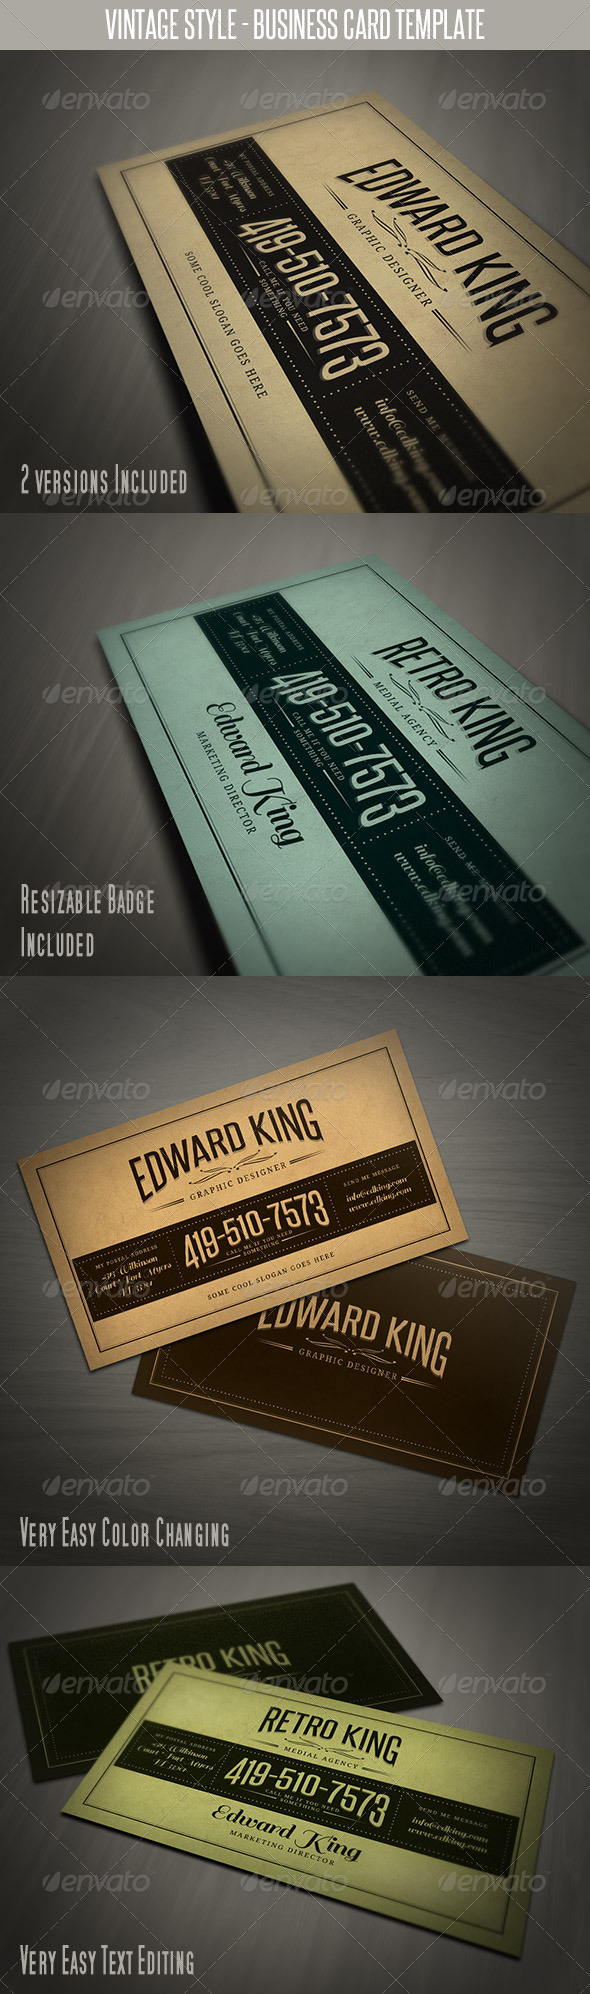 GraphicRiver Vintage Style Business Card Template 3971837